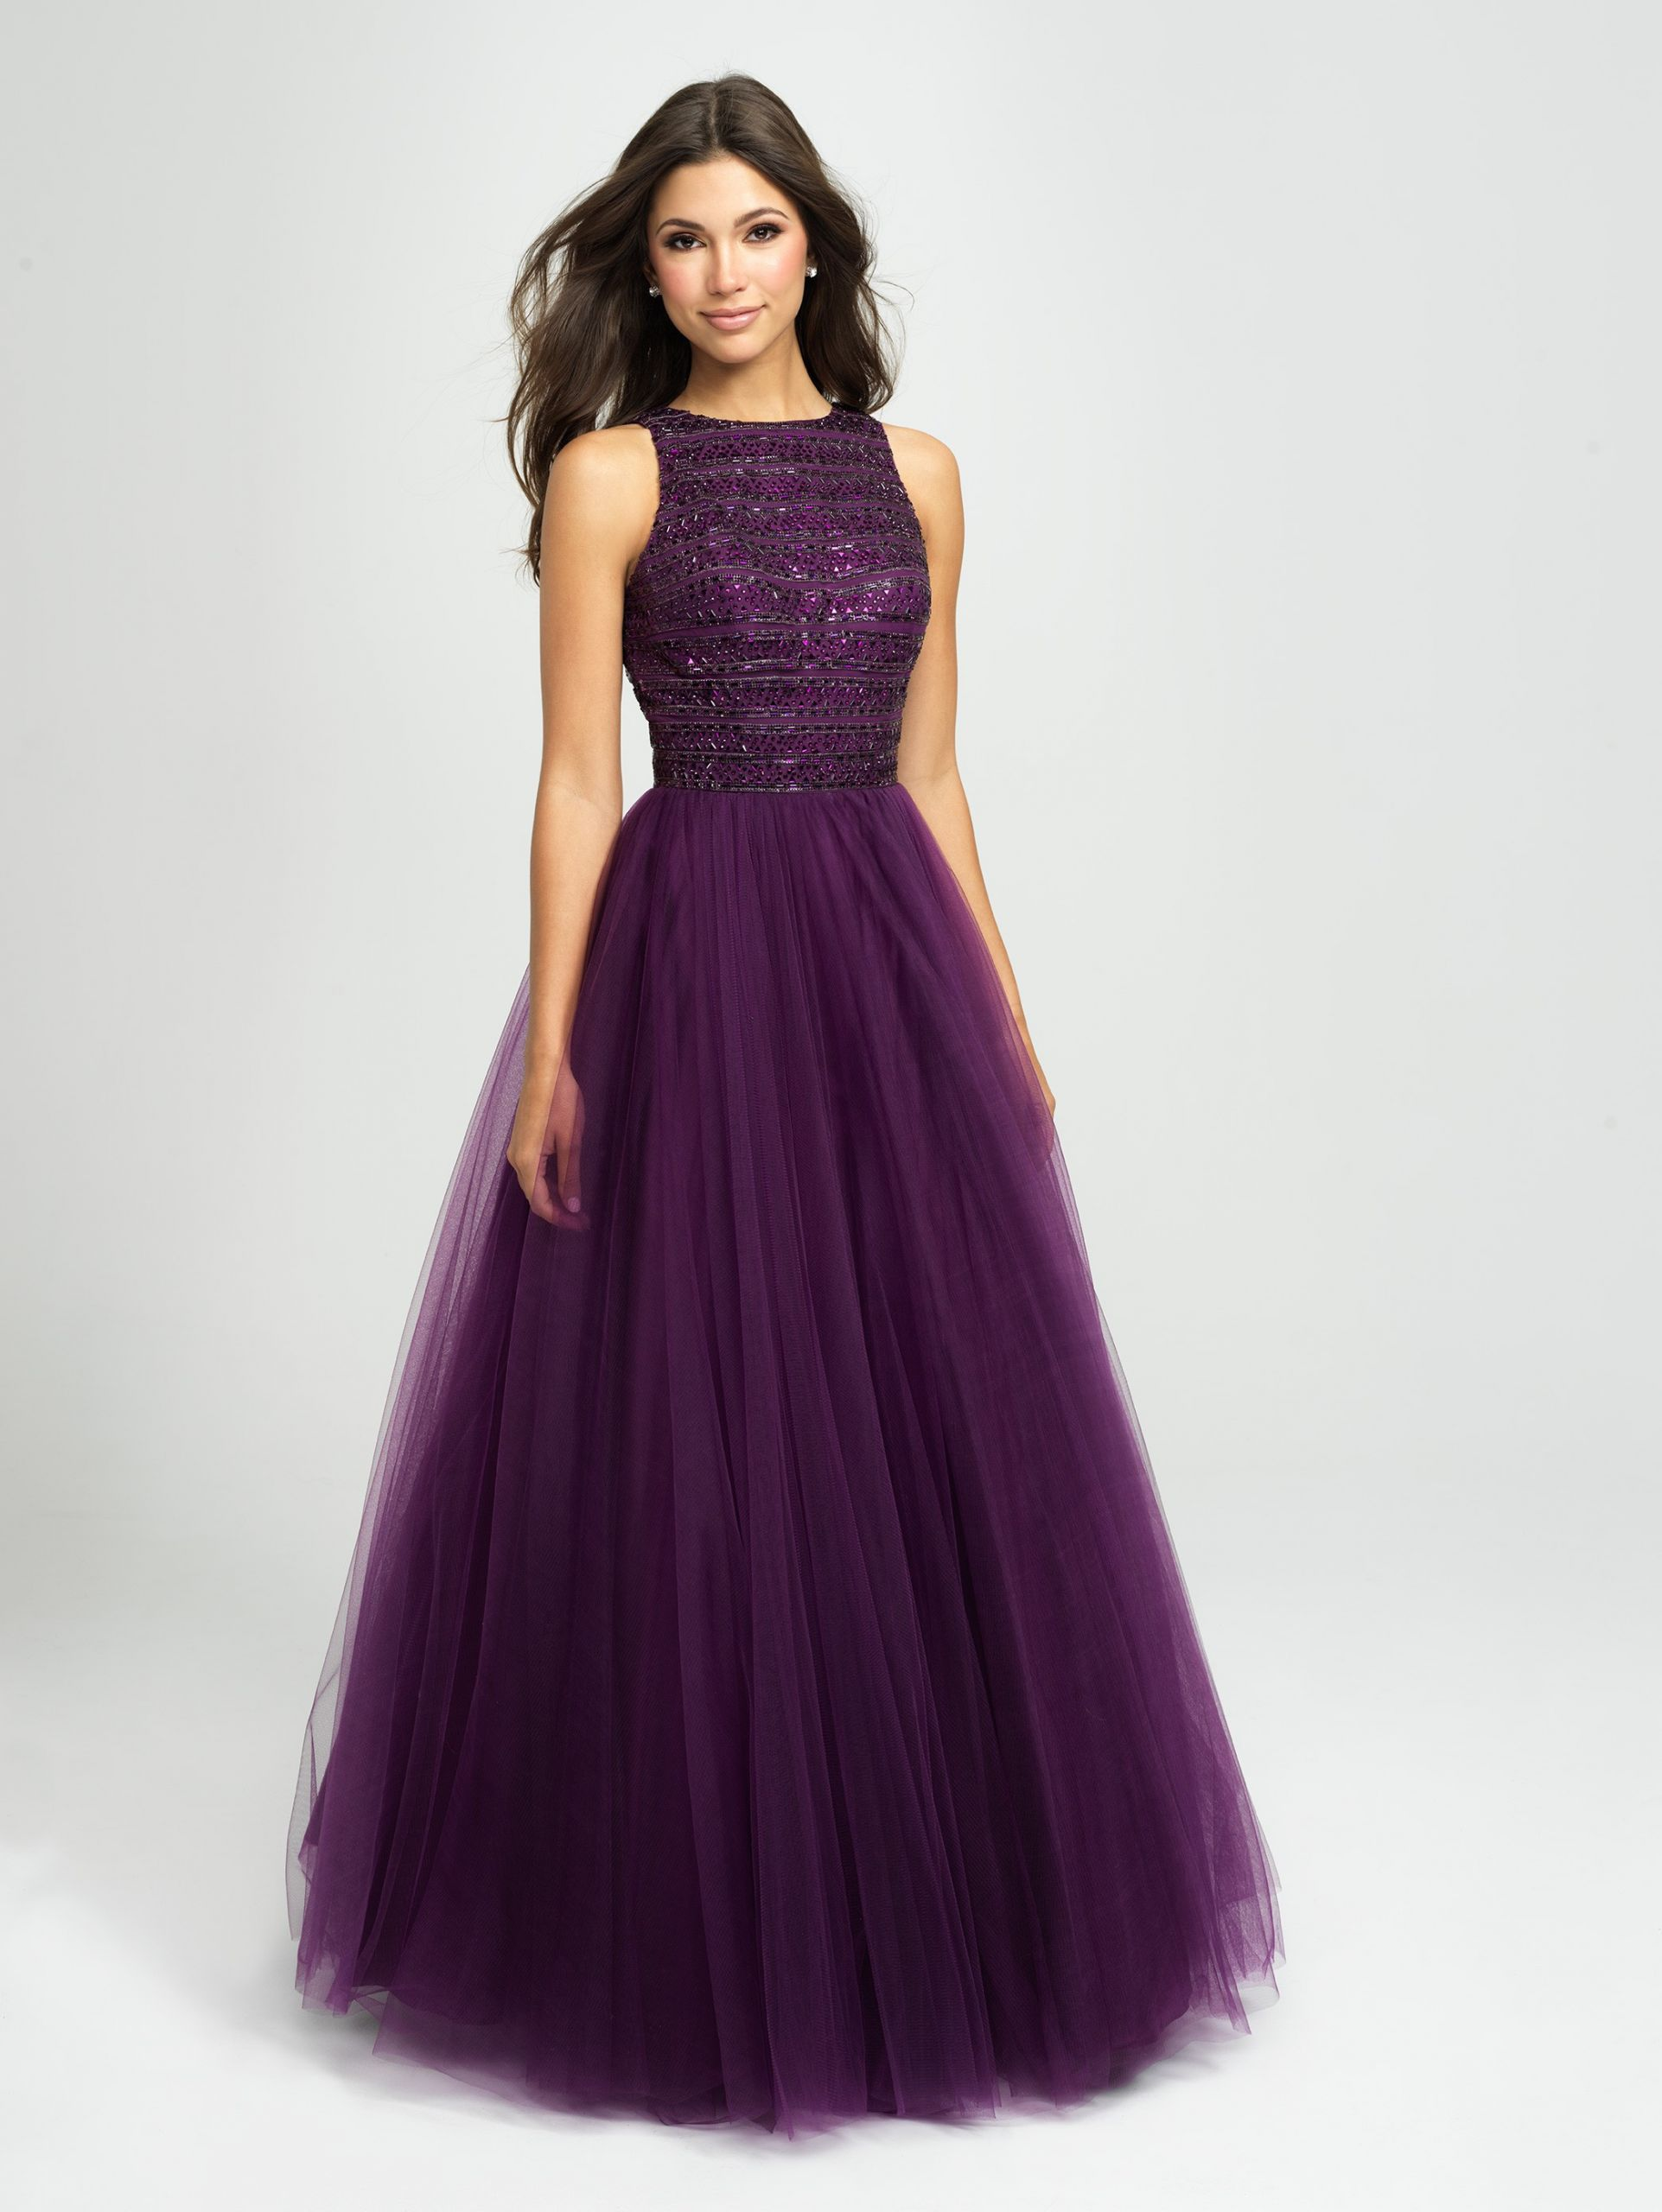 Purple Wedding Gown  29 of the Best Colourful Wedding Dresses for 2019